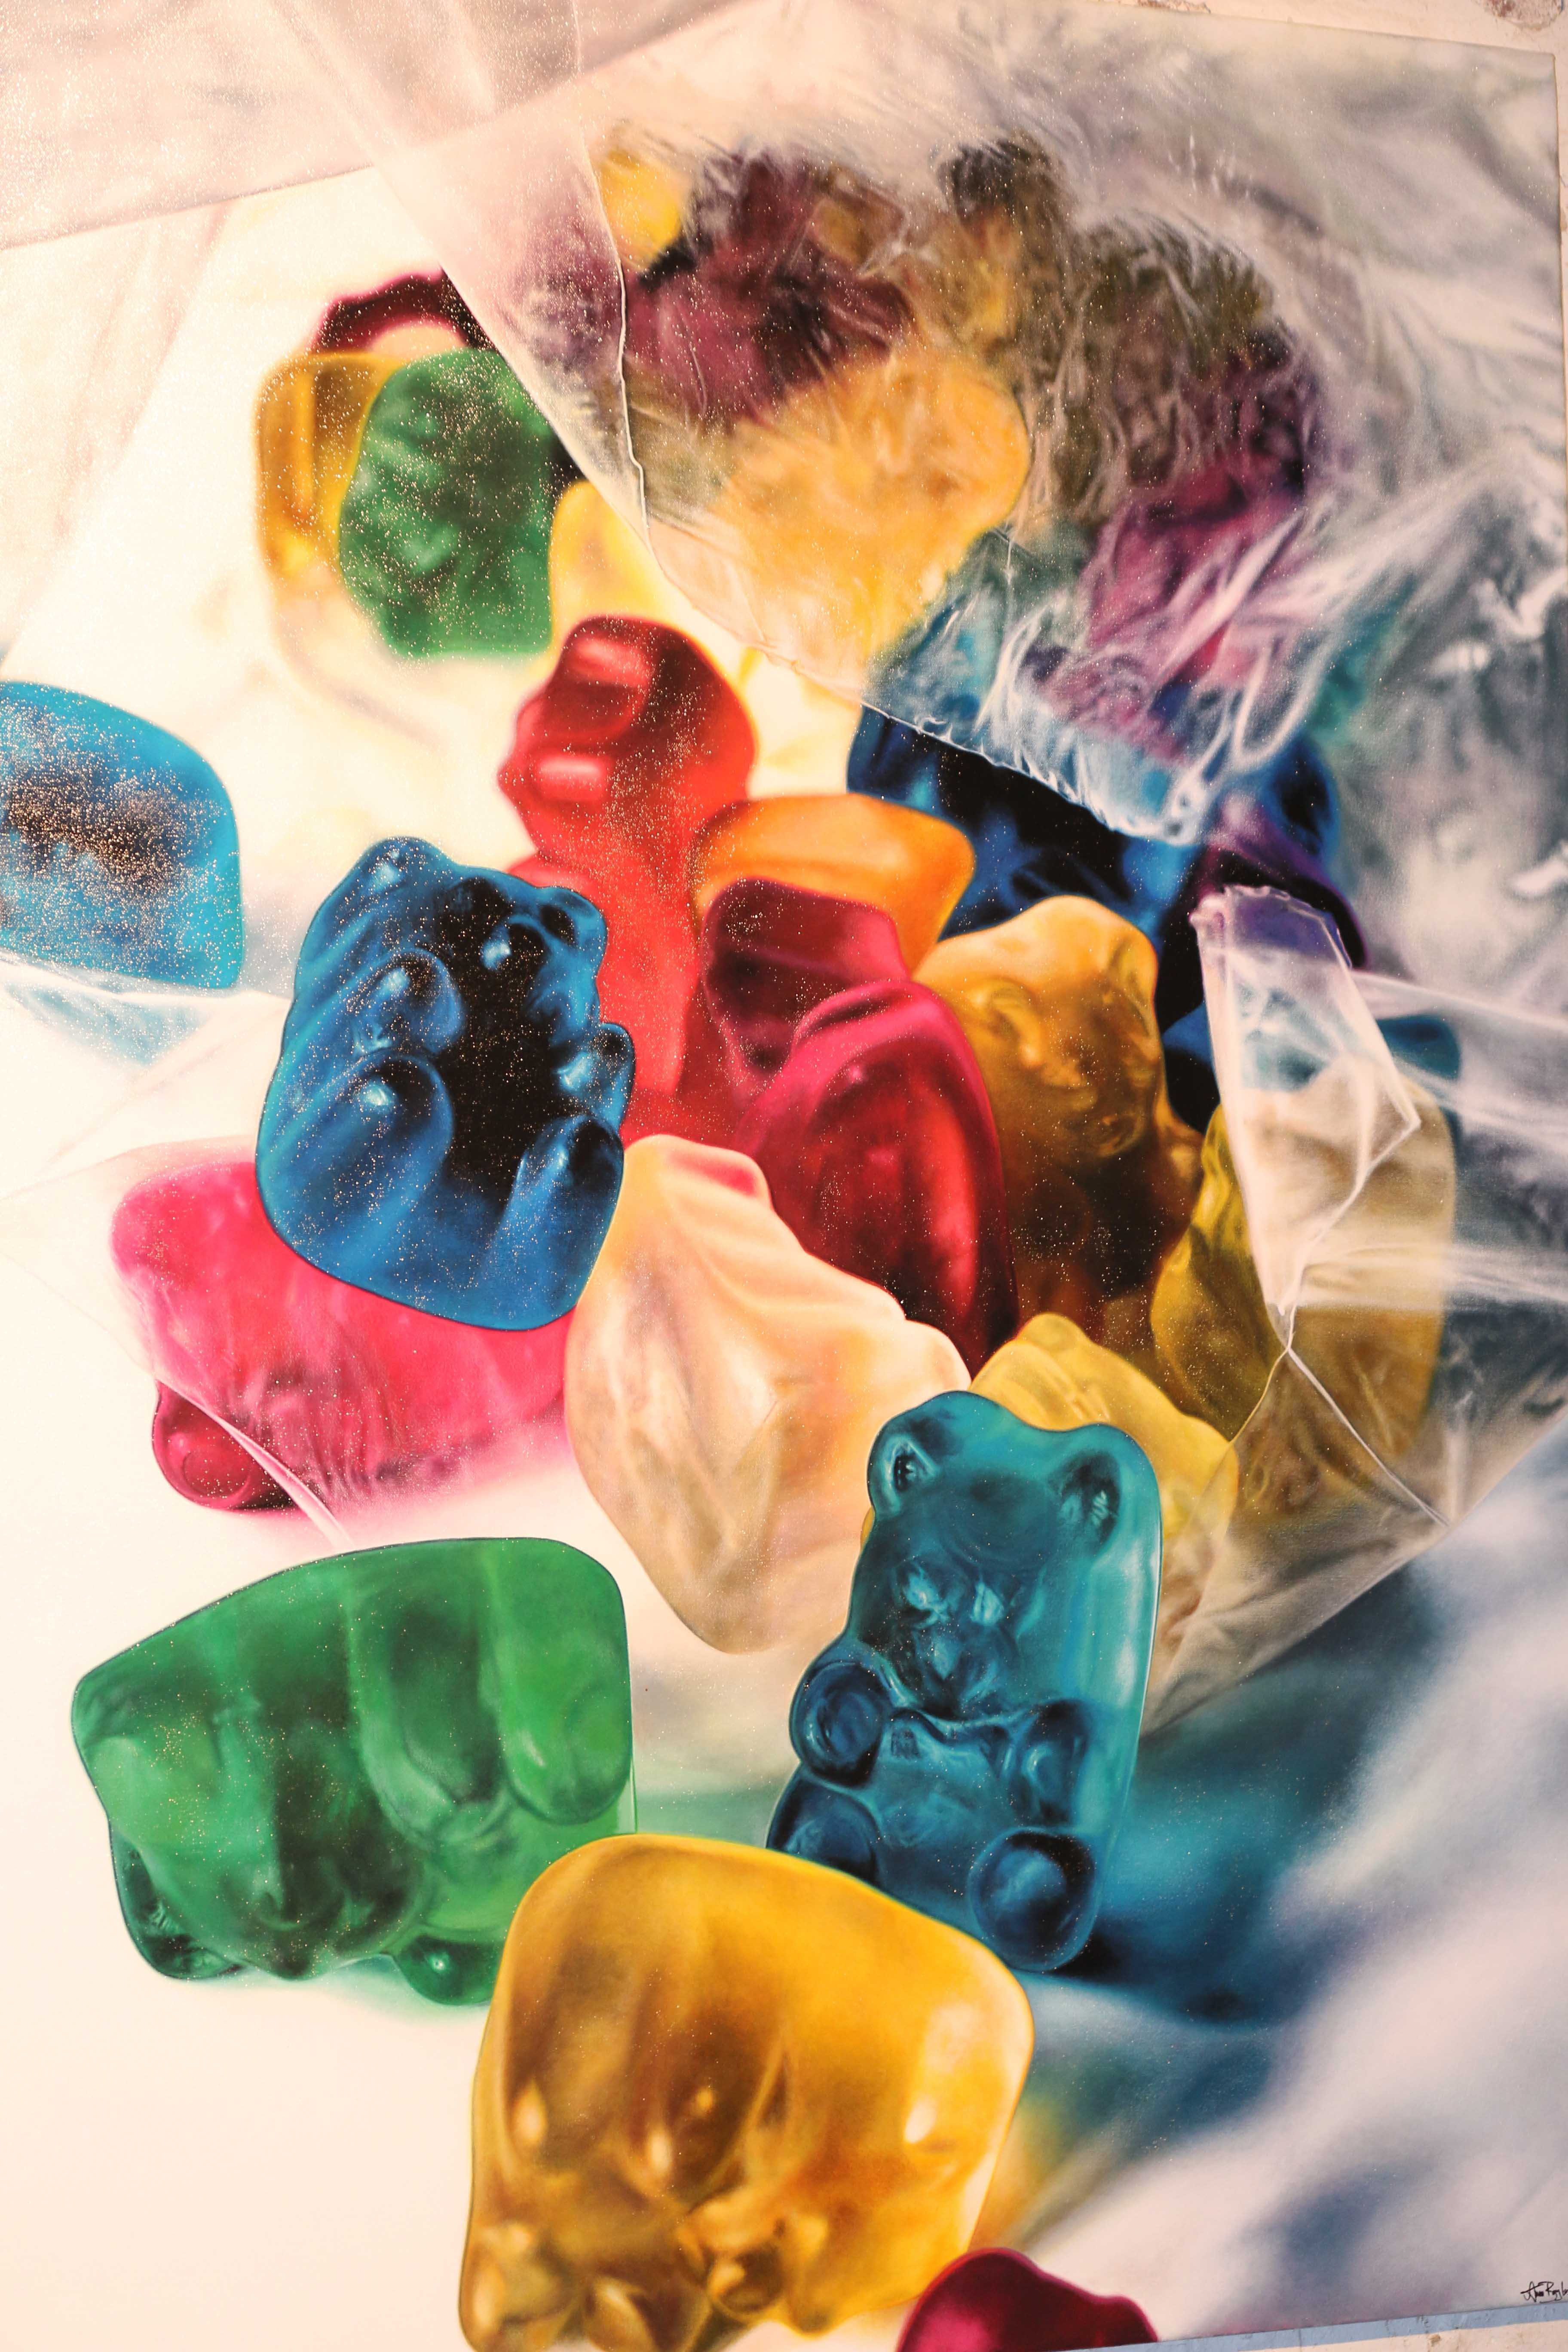 Gummy bear photograph is one of the many art pieces at Terrain.